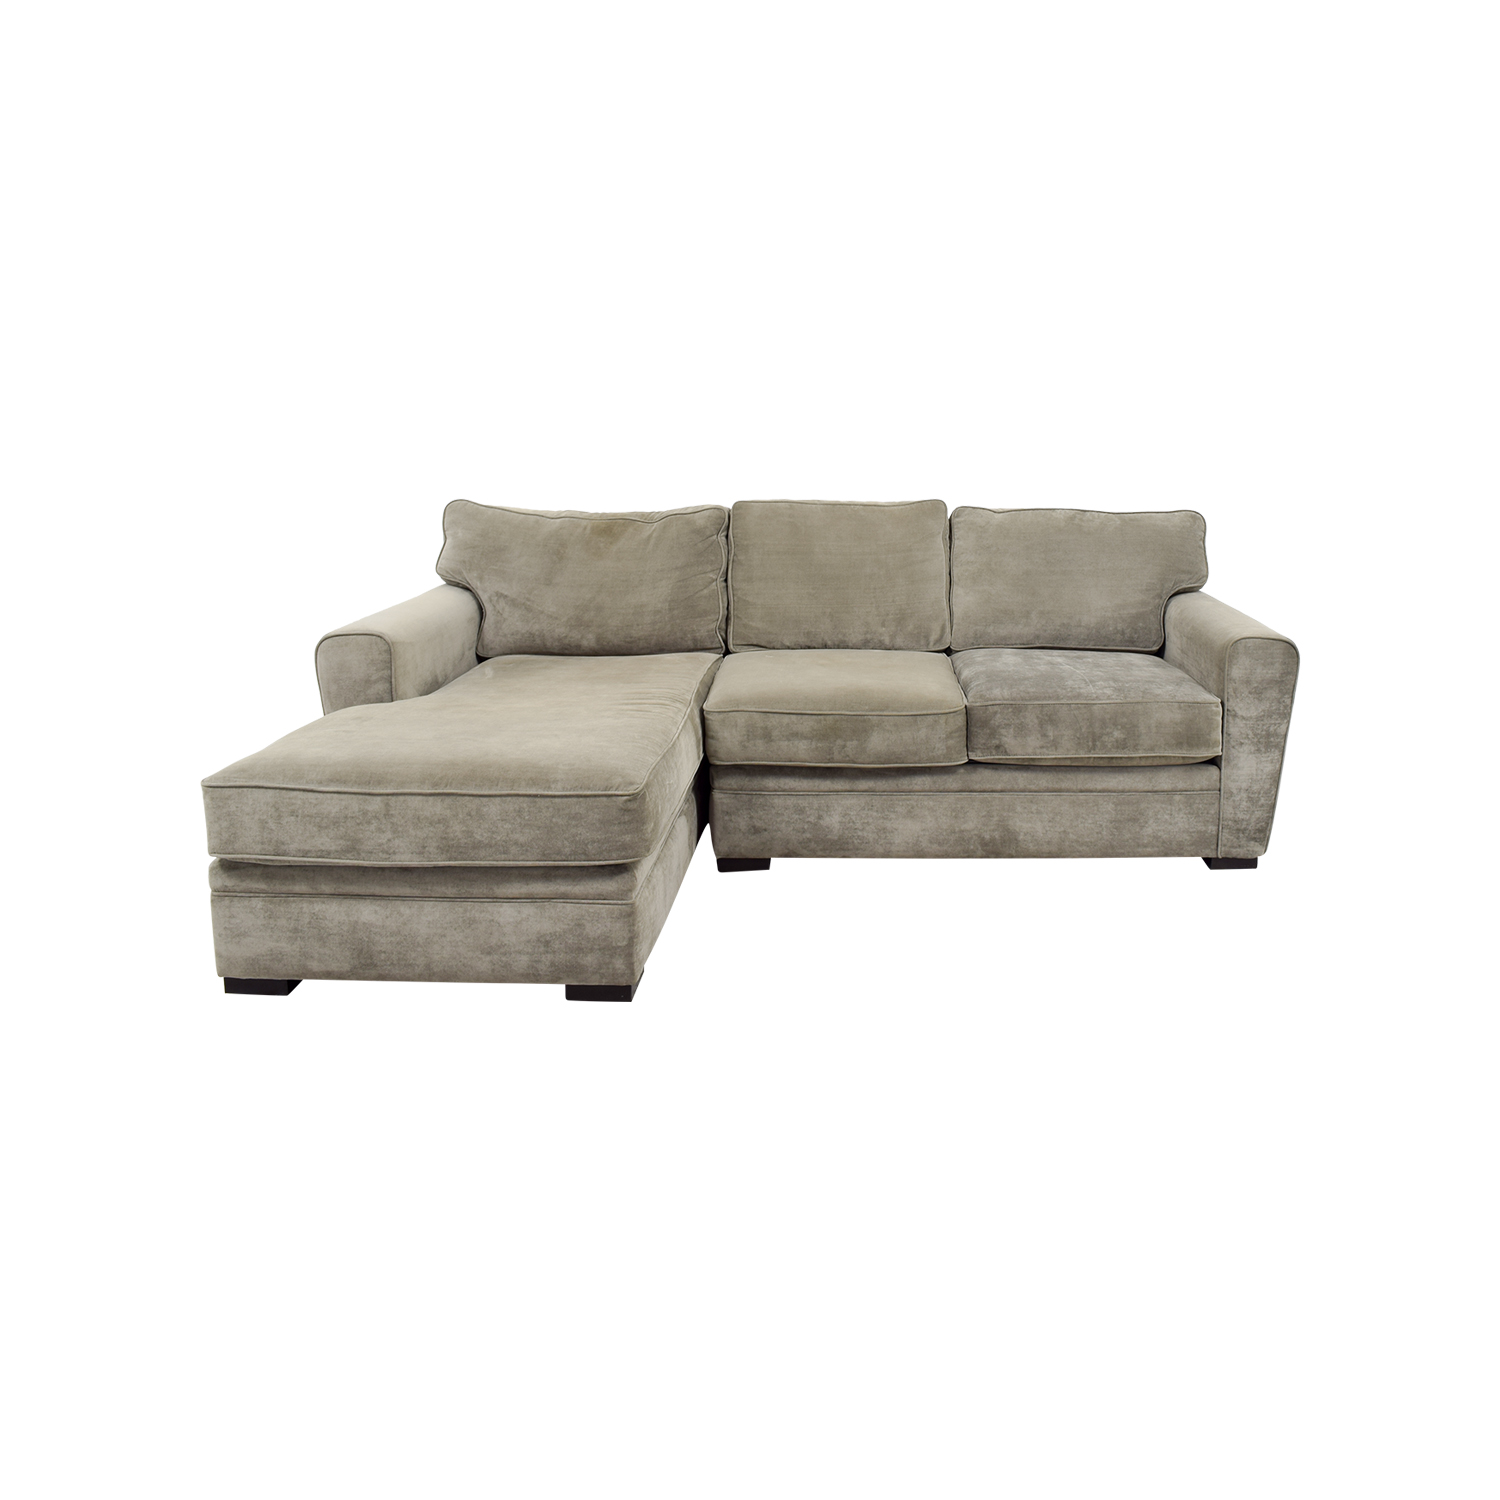 Crate and Barrel Crate and Barrel Gray Velvet Chaise Sectional nj